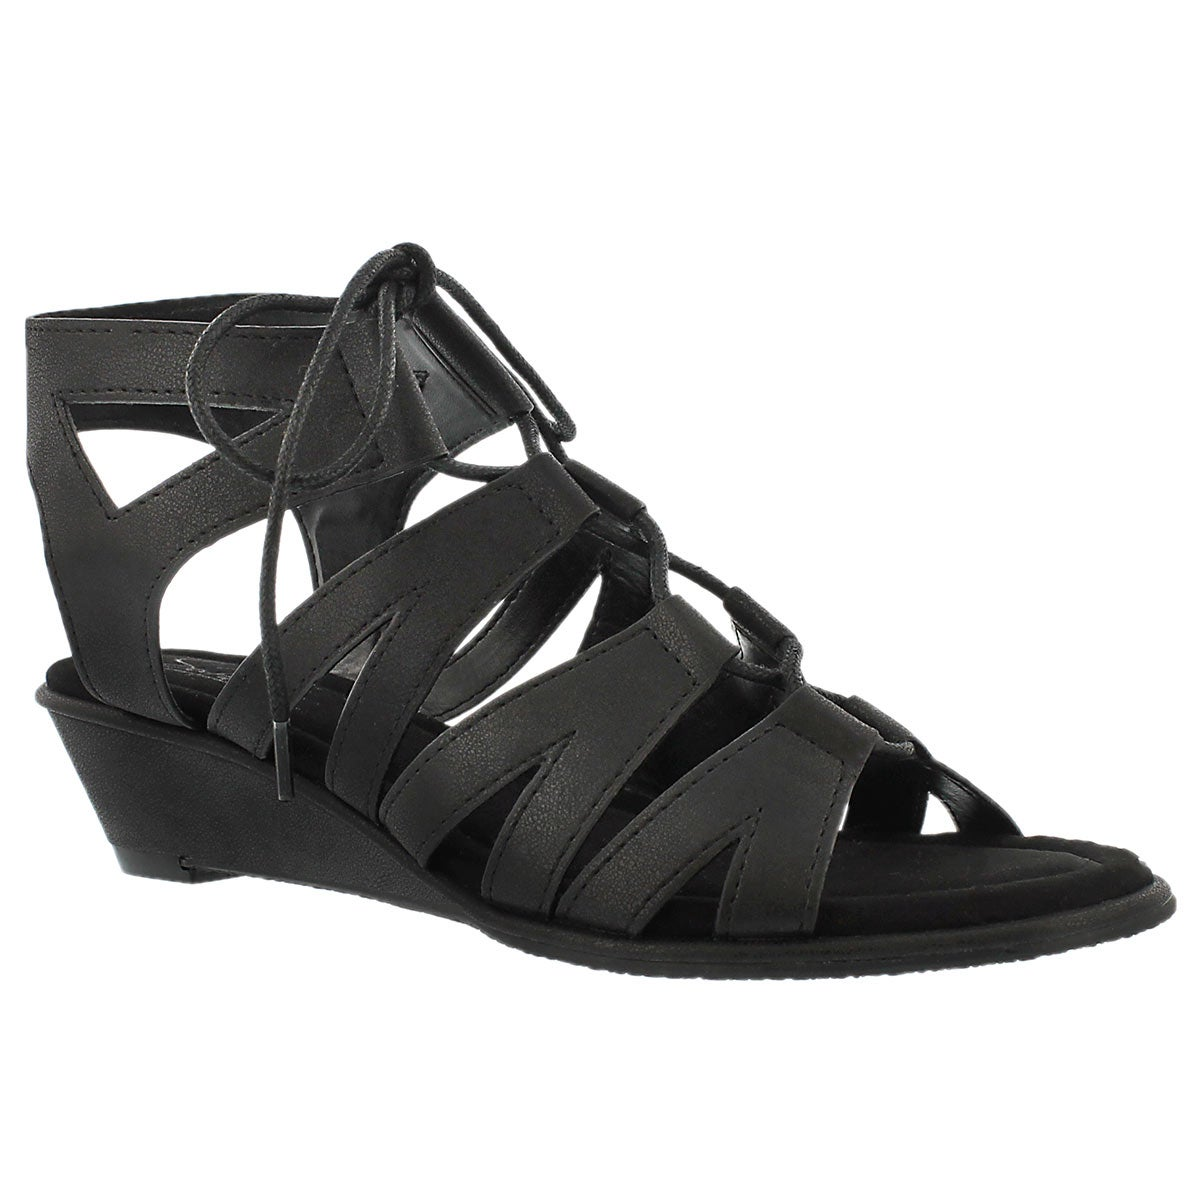 Women's BEYONCE black wedge gladiator sandals